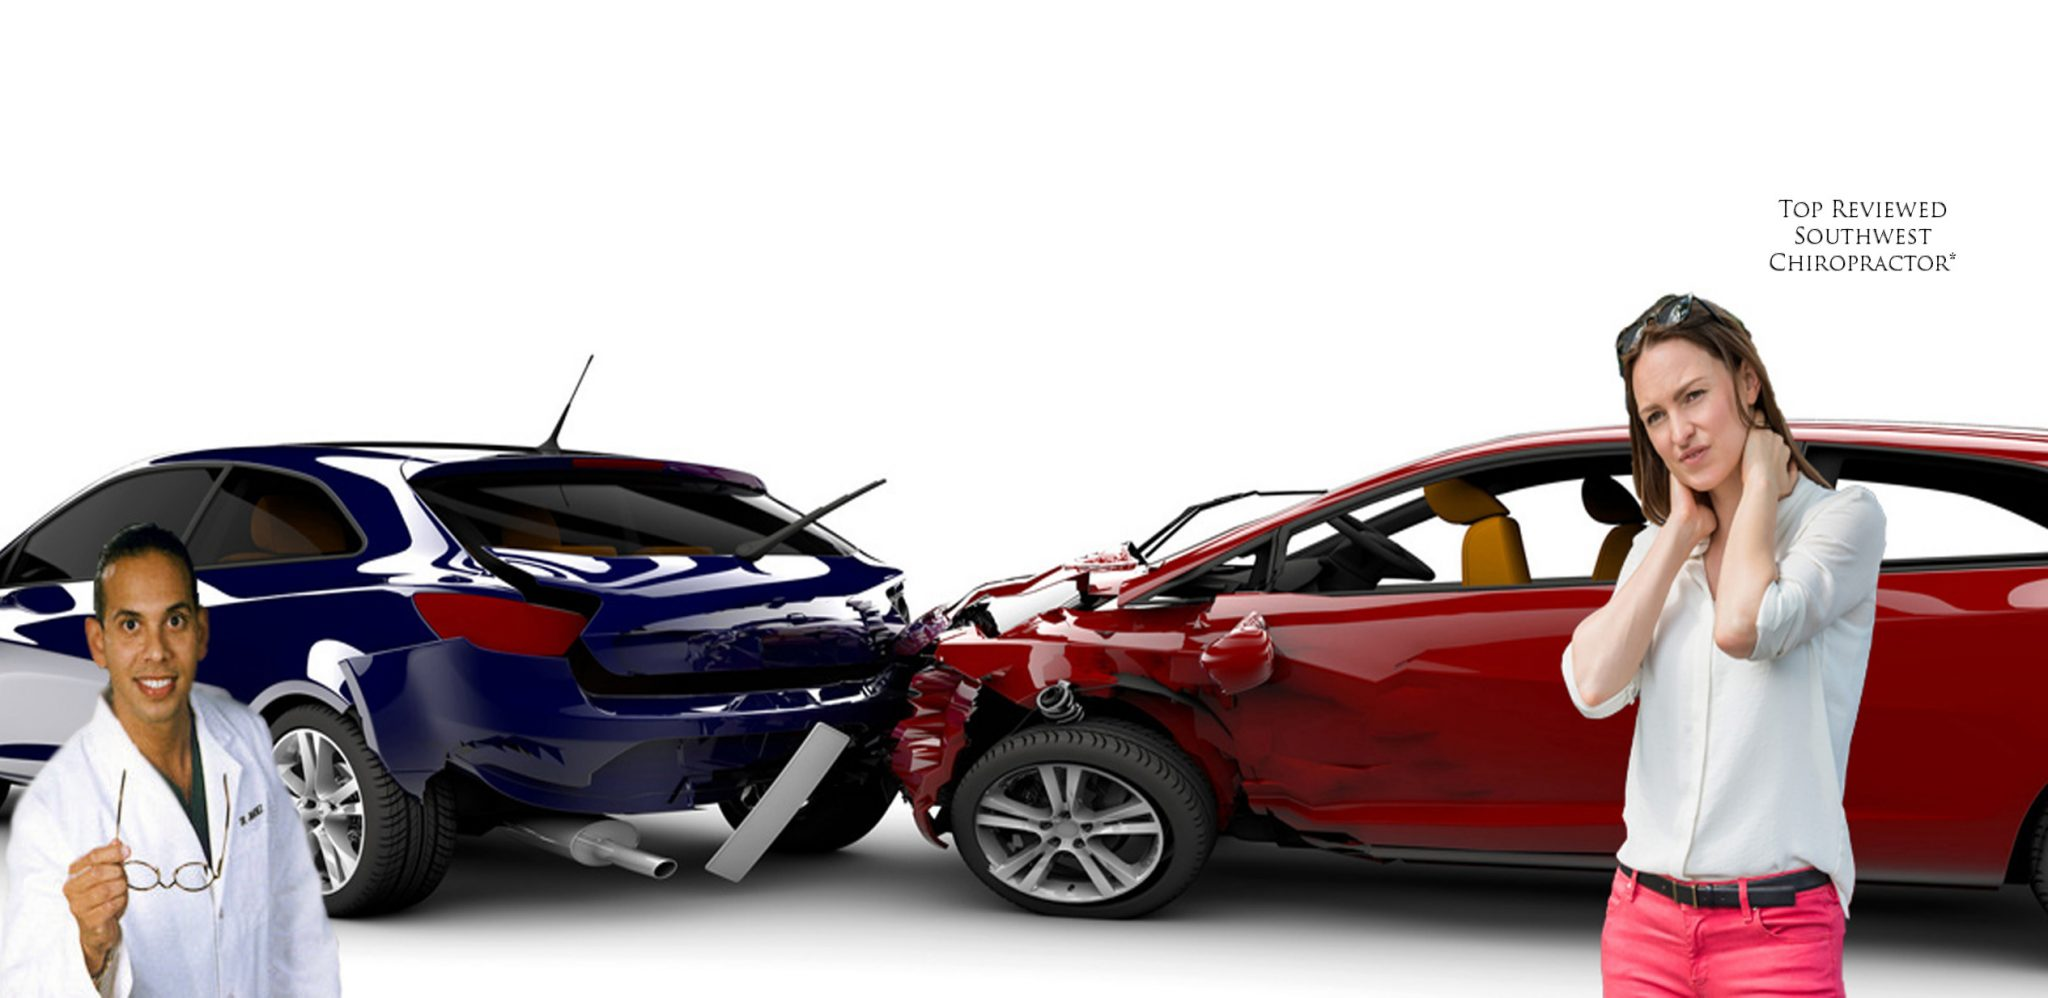 Accidents Are Frustrating. We Are Here To Help.